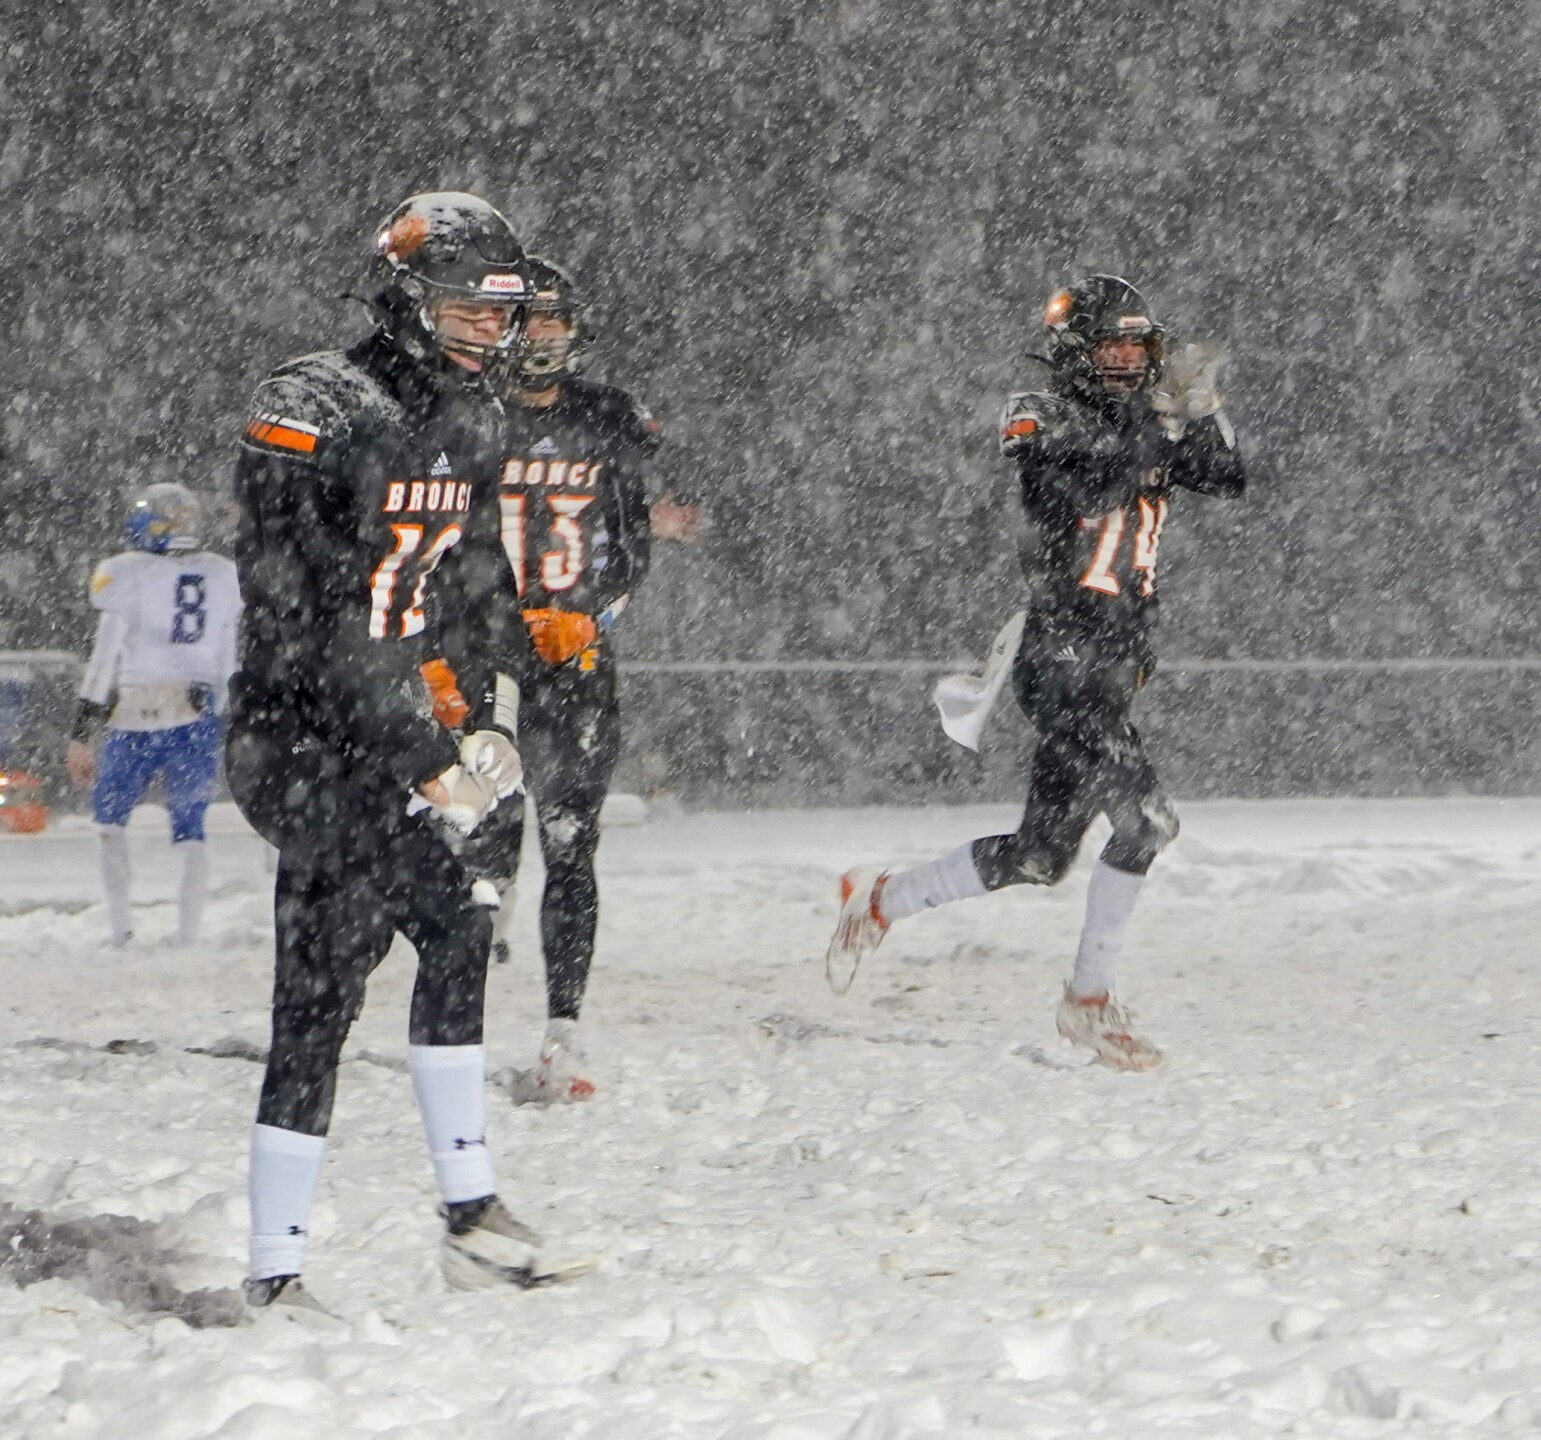 Frenchtown's Devin Shelton, Jace Adams and Peyton Hicks.jpg